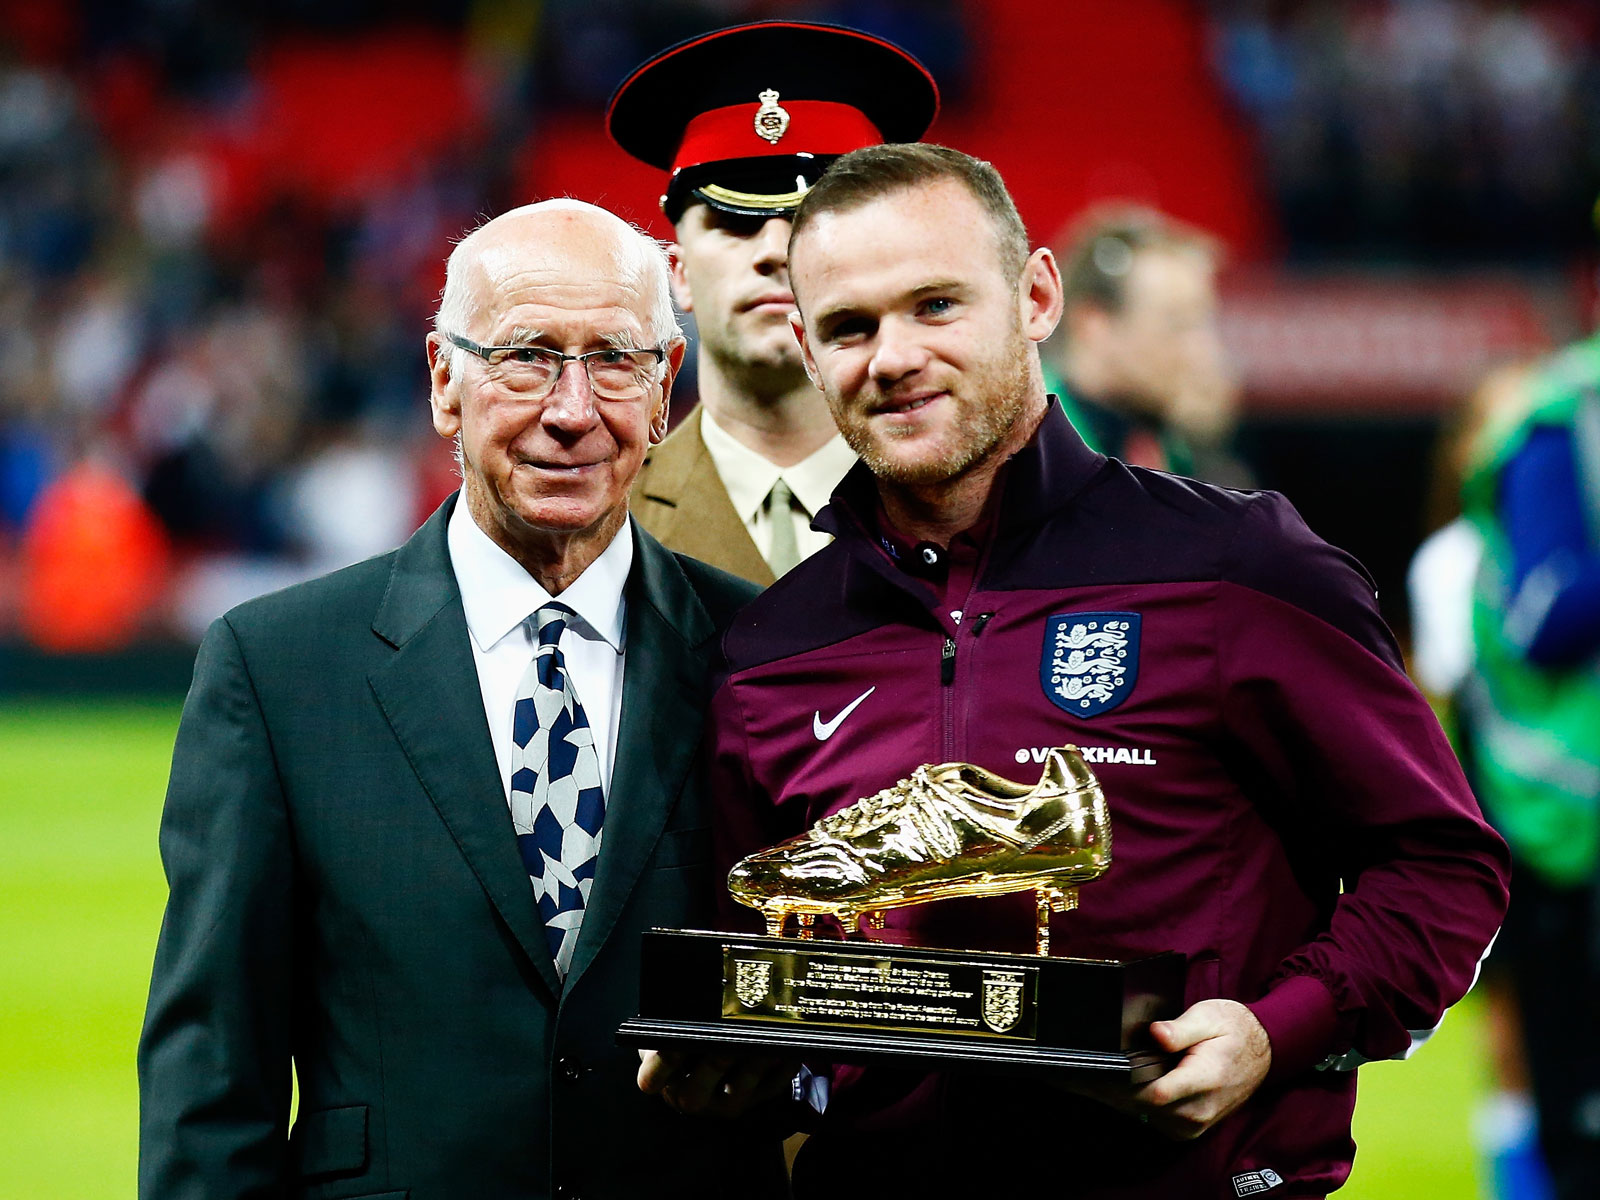 Wayne Rooney set England's all-time leading goal record